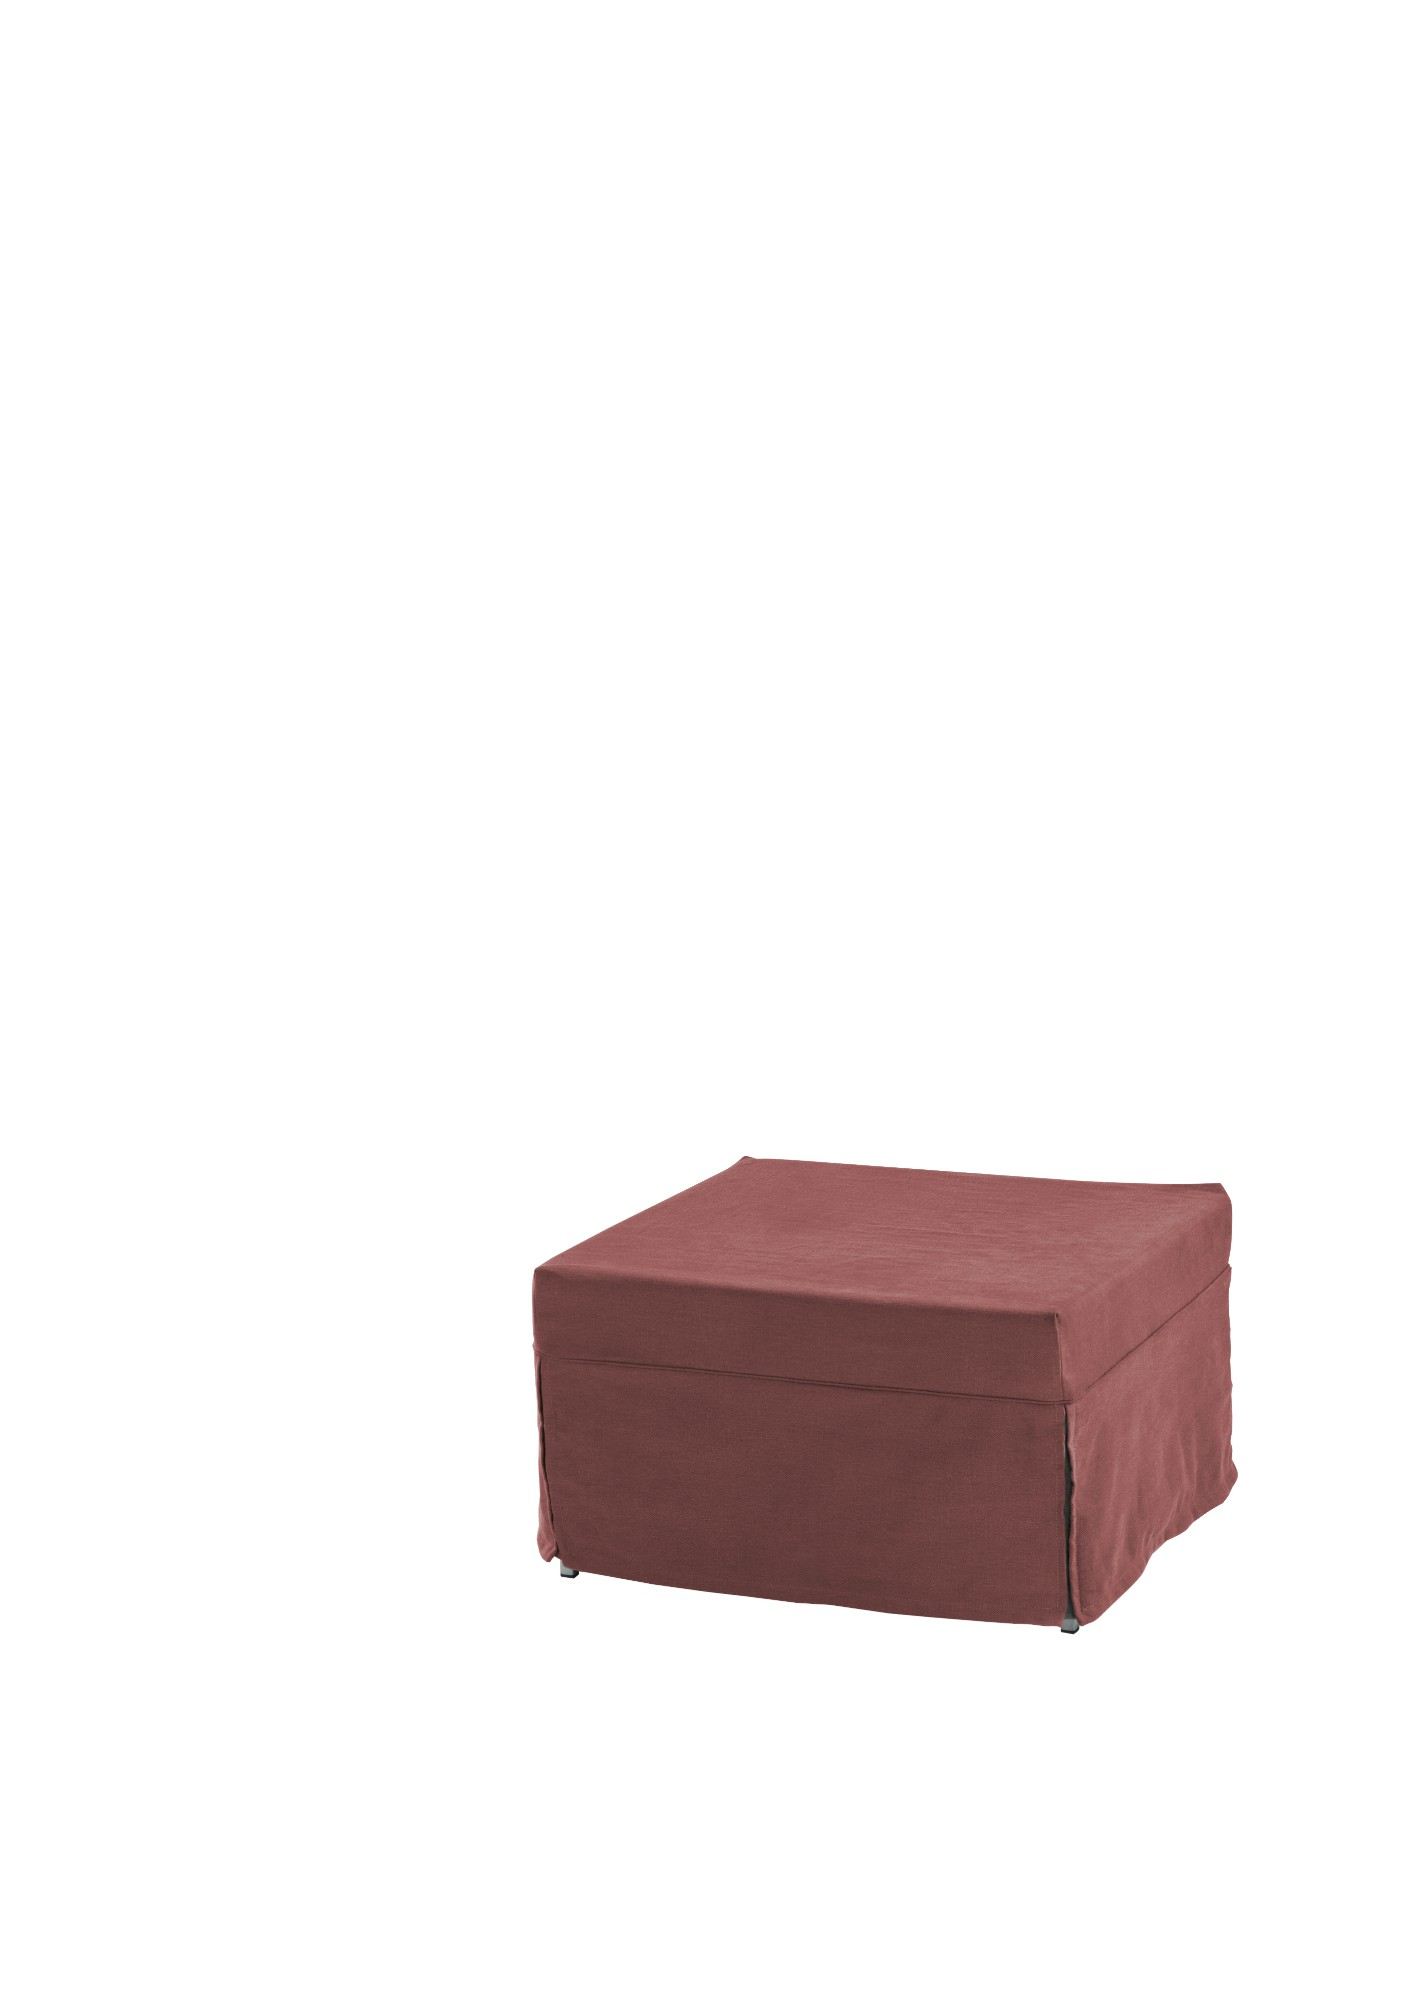 extra bed, guest bed, Gästebett, Sofabed, Daybeds, Sedabox, Meca Box, Sedac Meral, Hocker, square ottoman, easily unfolds to a bed, Sessel, chair to bed, vom Sessel zum Bett, Relaxsessel